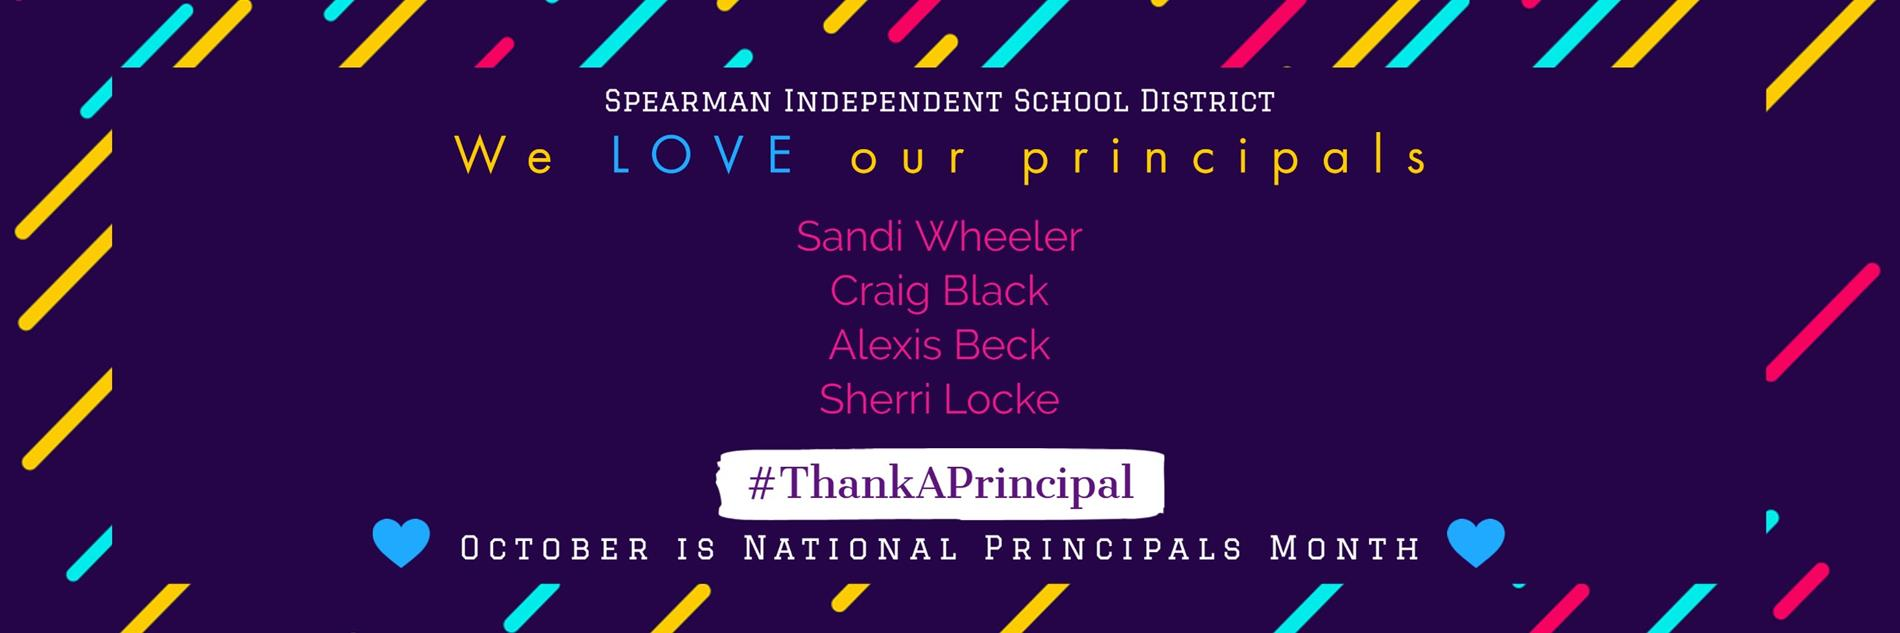 Principal Month picture